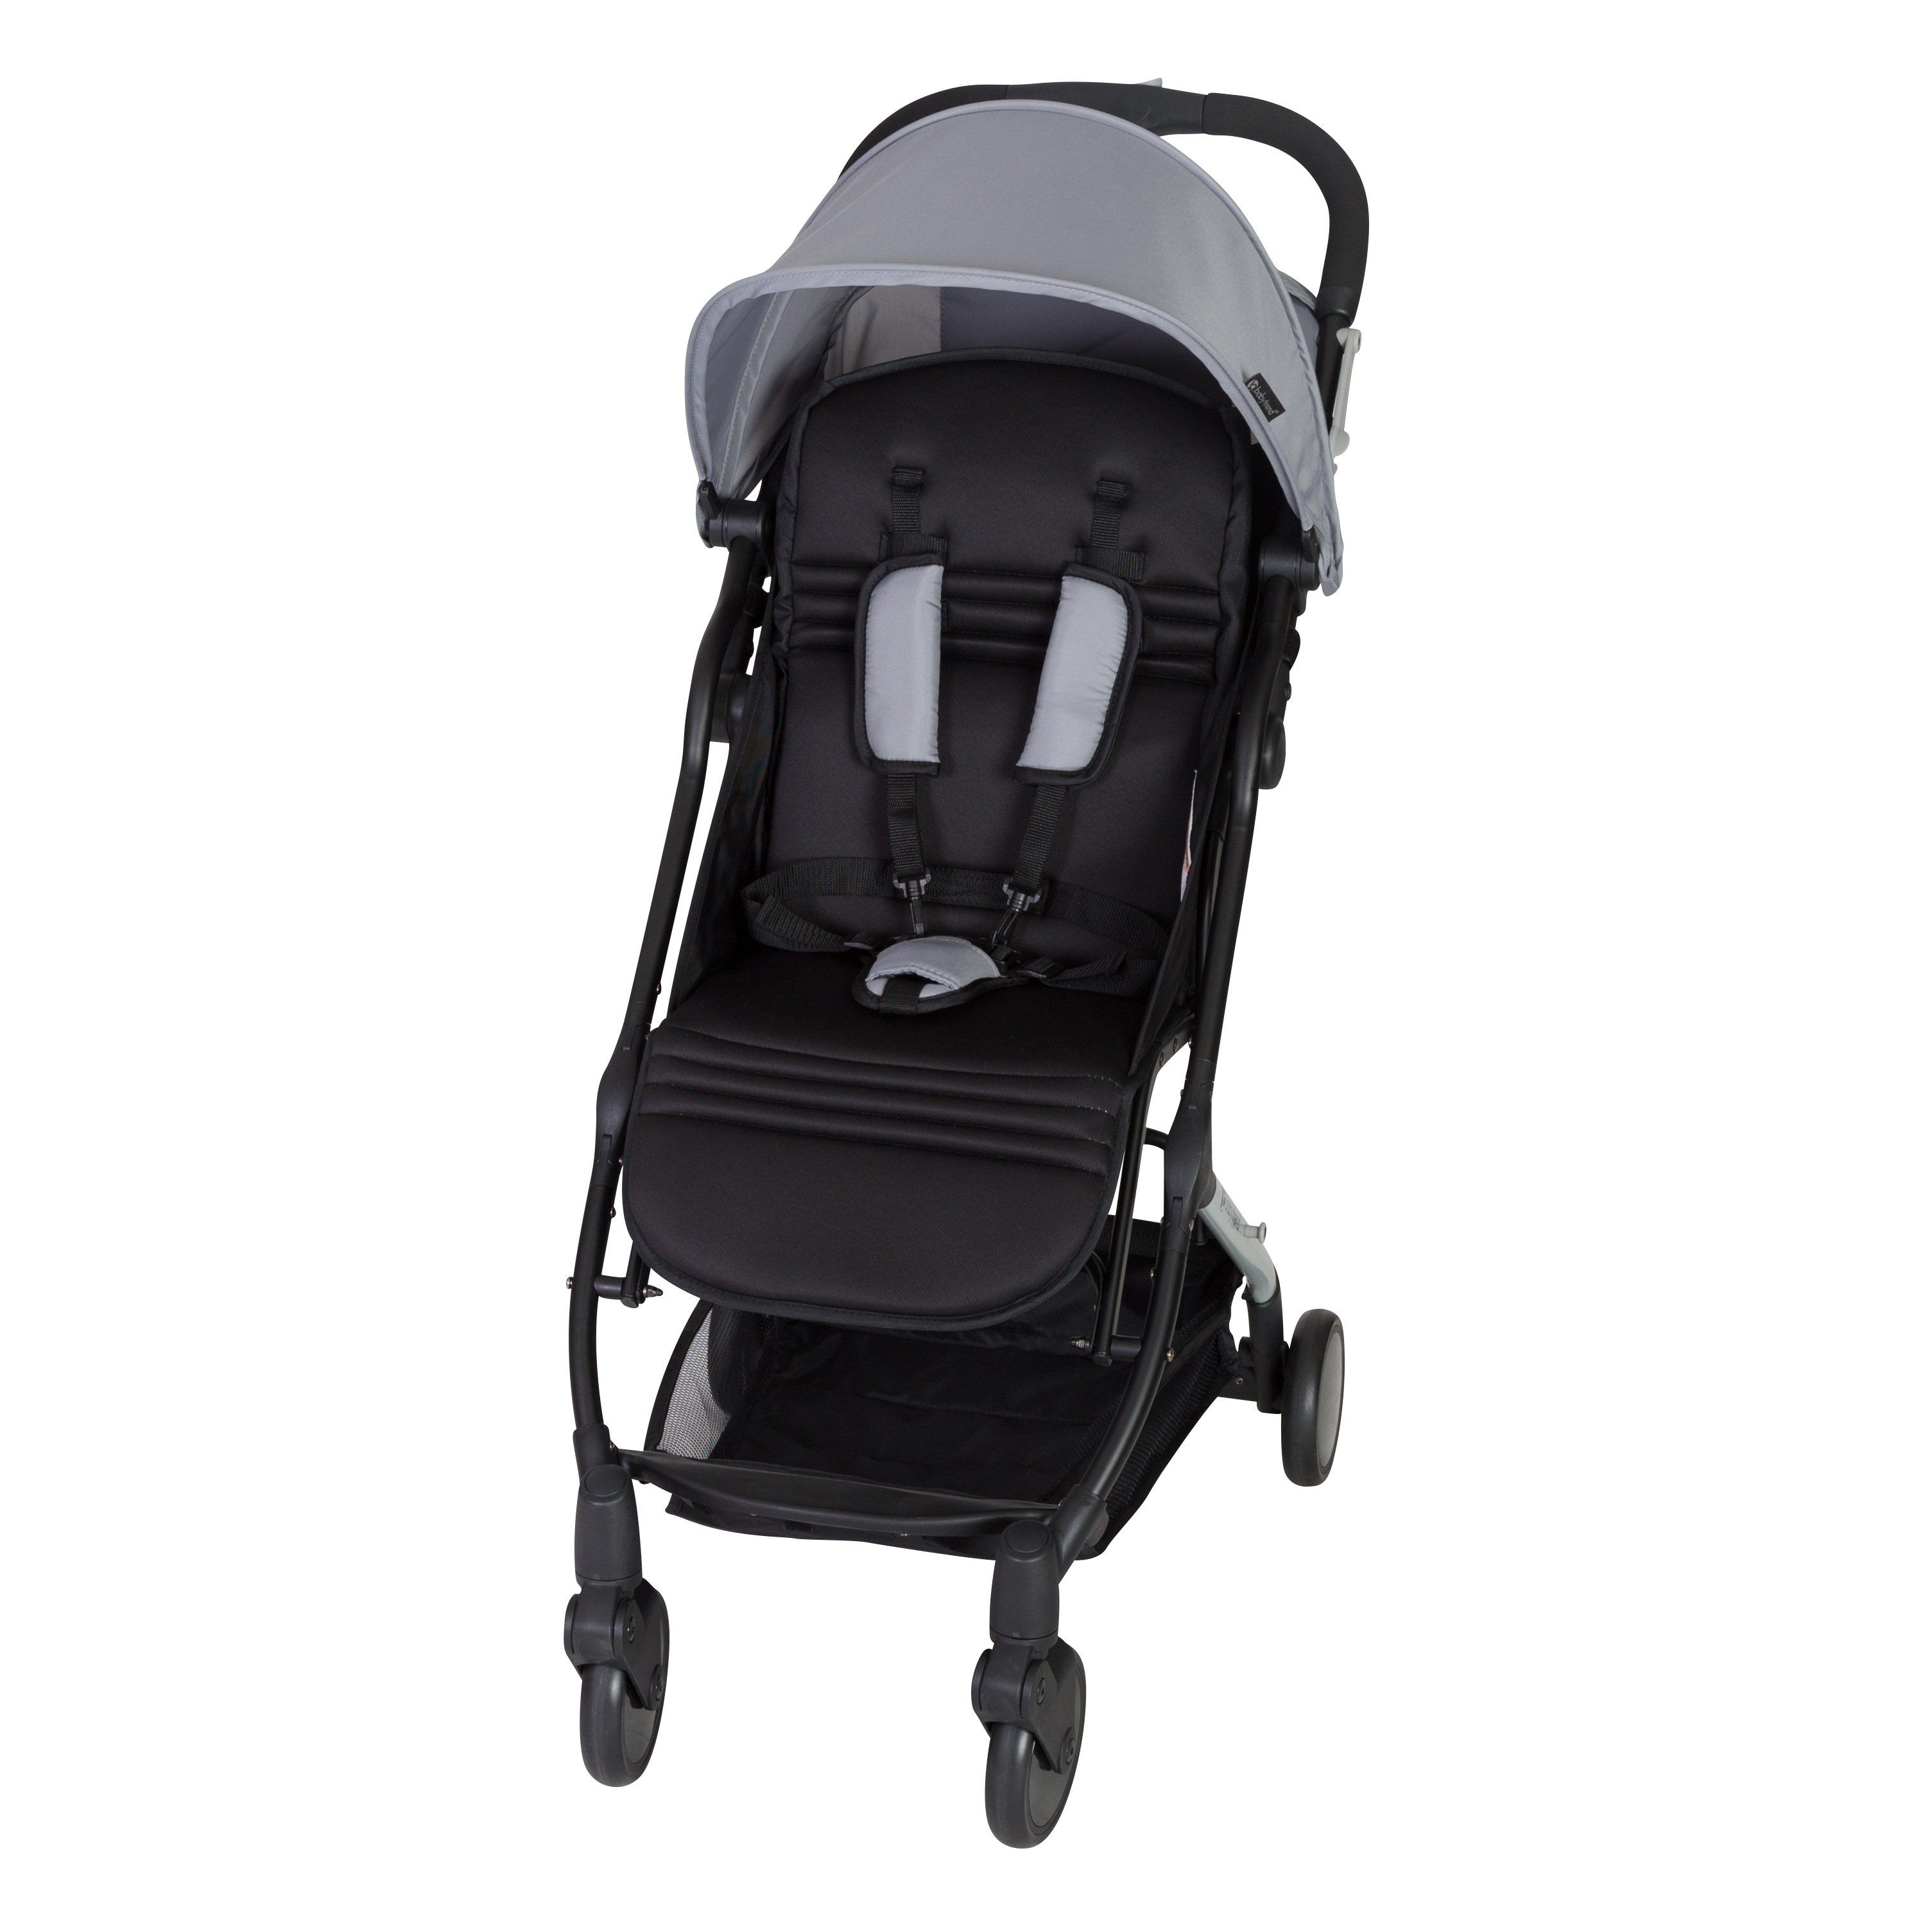 Baby Trend TriFold Mini Stroller,Pebble, Grey Baby